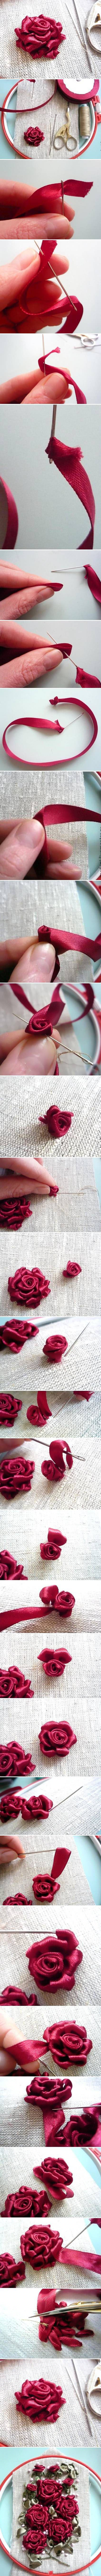 Ribbon Art Embroidery